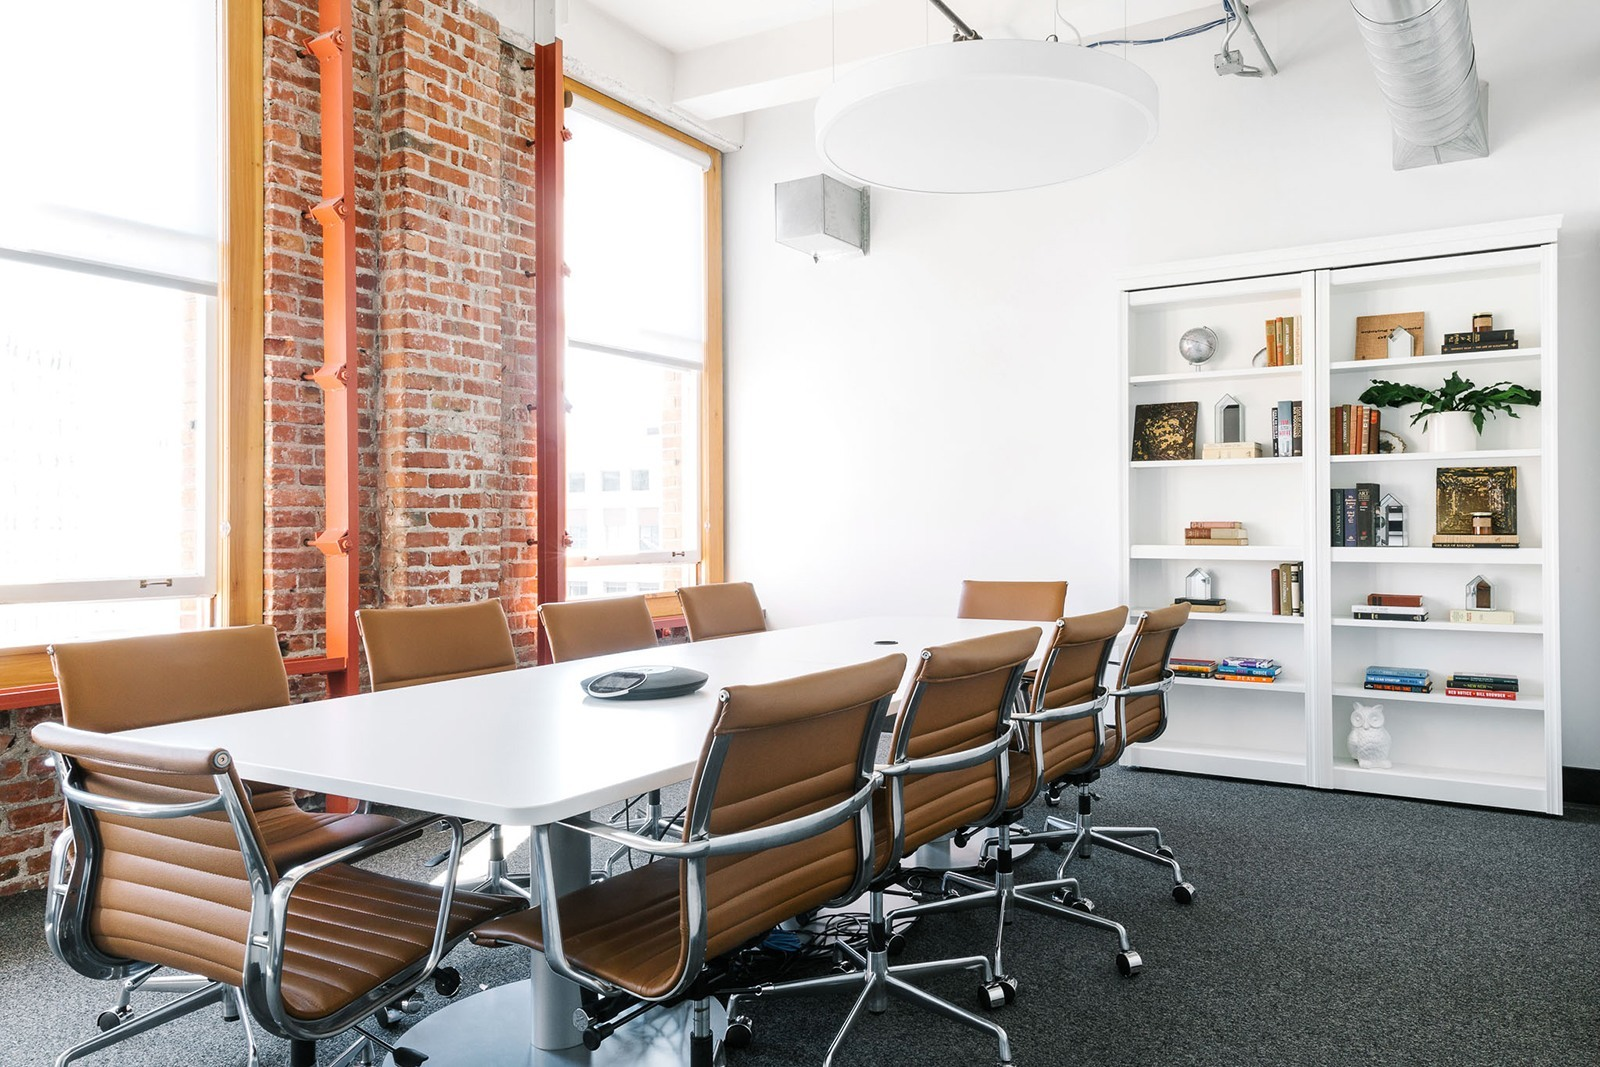 A tour of roofstock s hip oakland office officelovin 39 for Hip office design